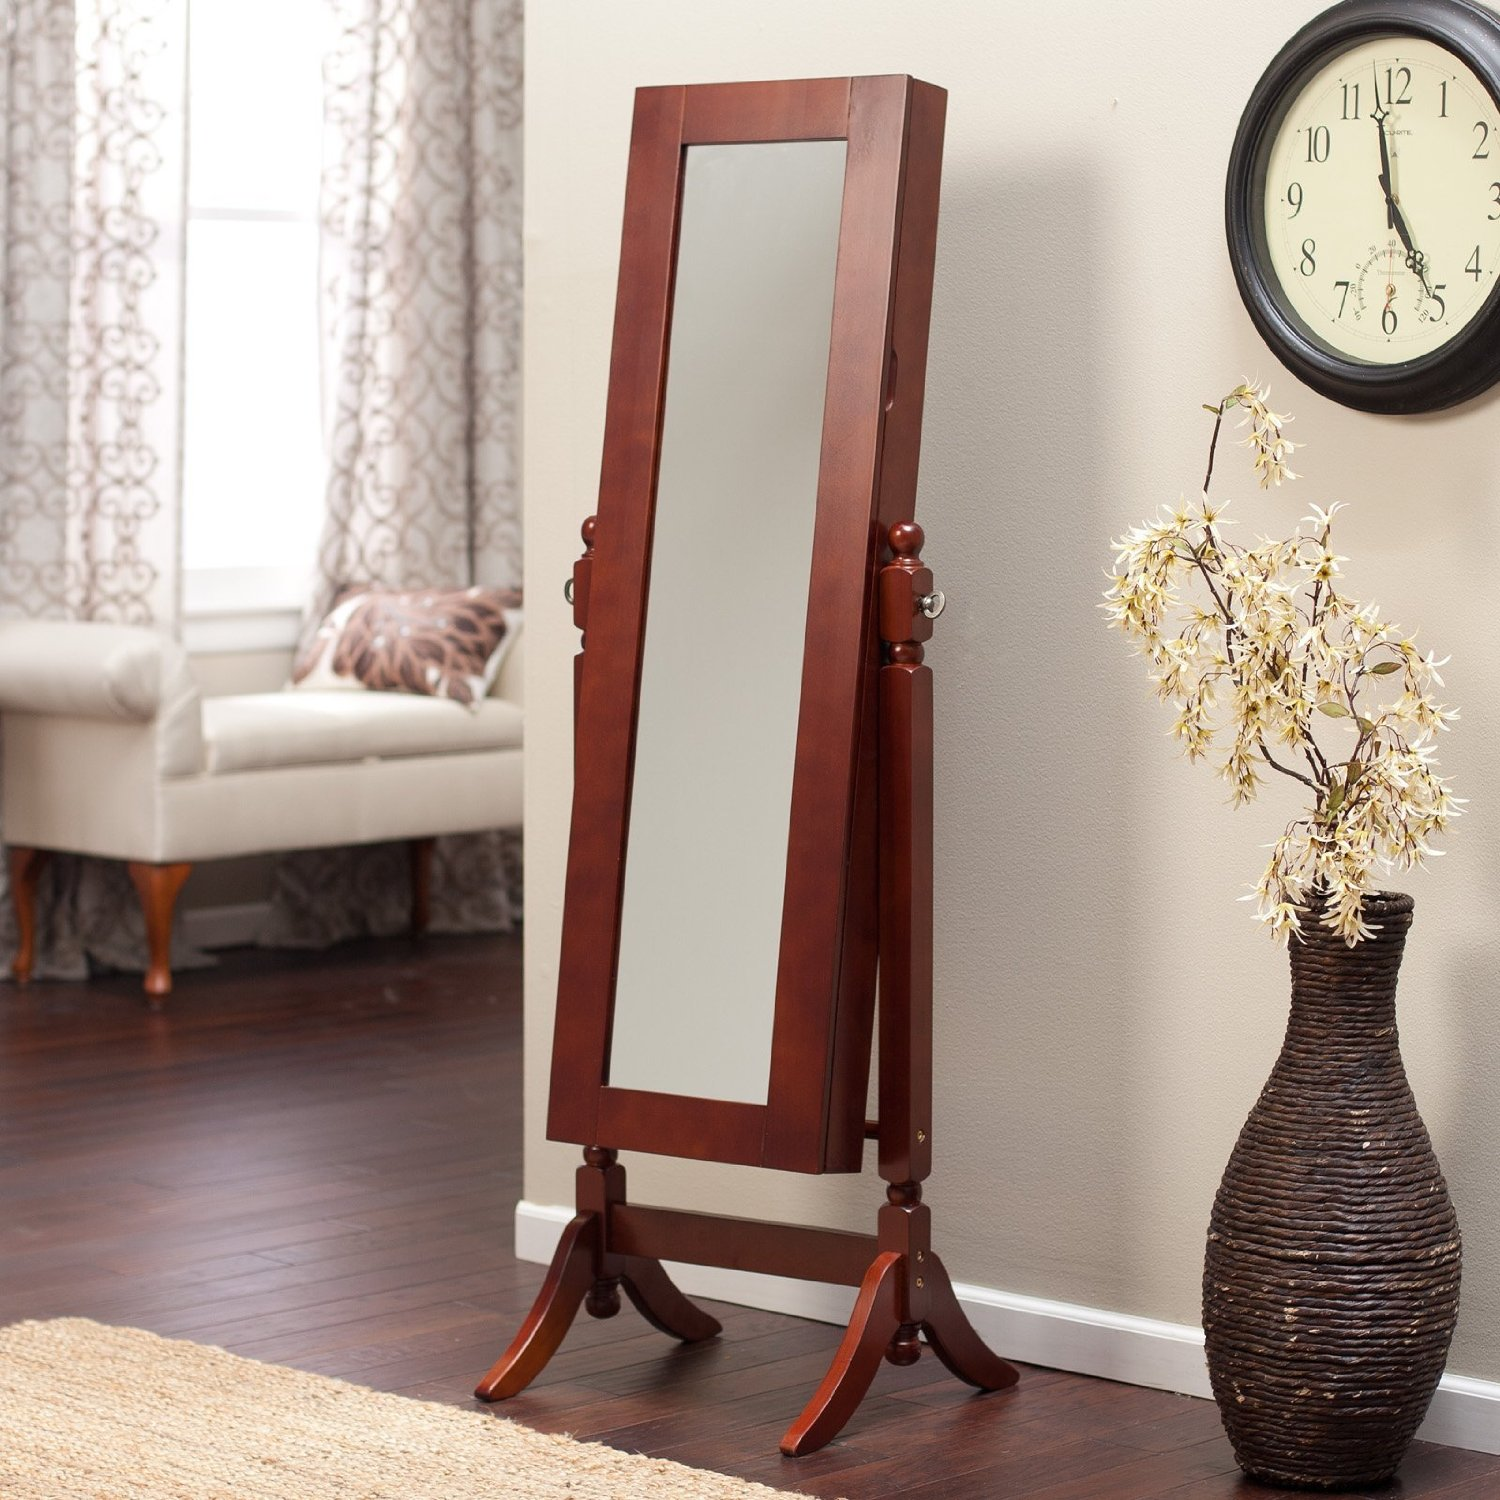 fancy wooden standing mirror jewelry armoire in brown before the beige wall matched with wooden floor with beige rug for living room decor ideas